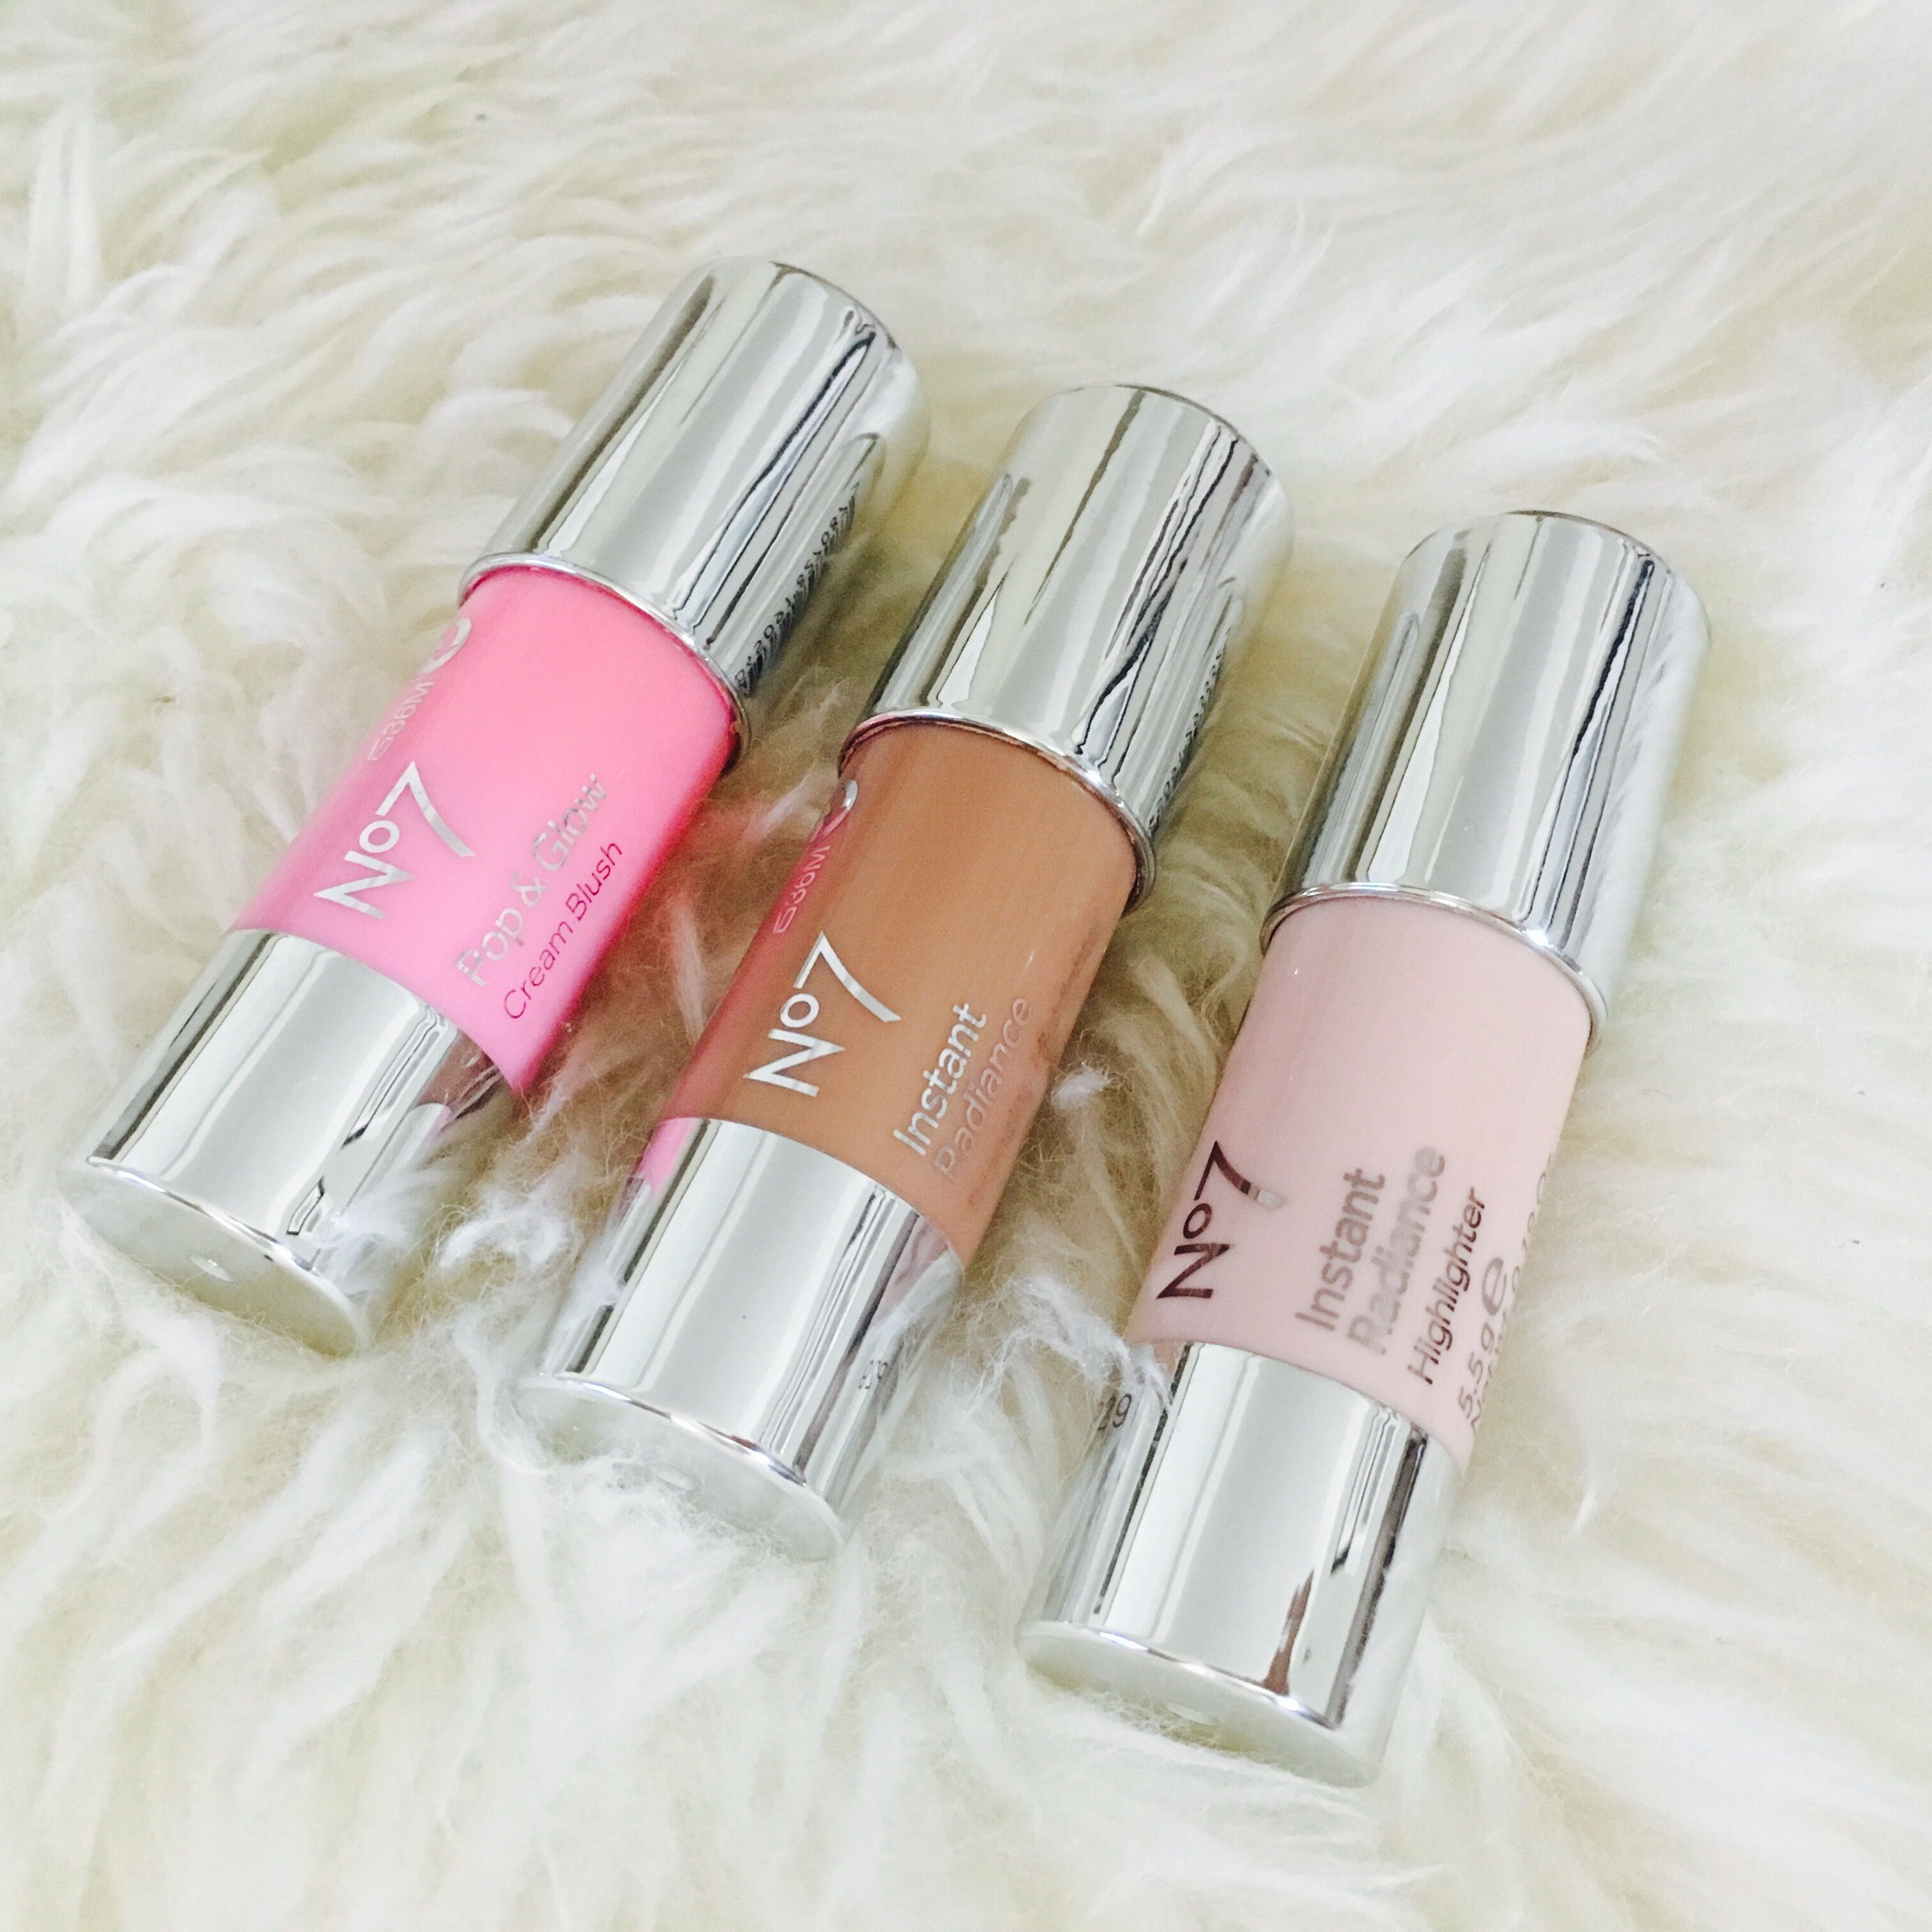 Practically a dupe for Clinique cubby stick highlight and